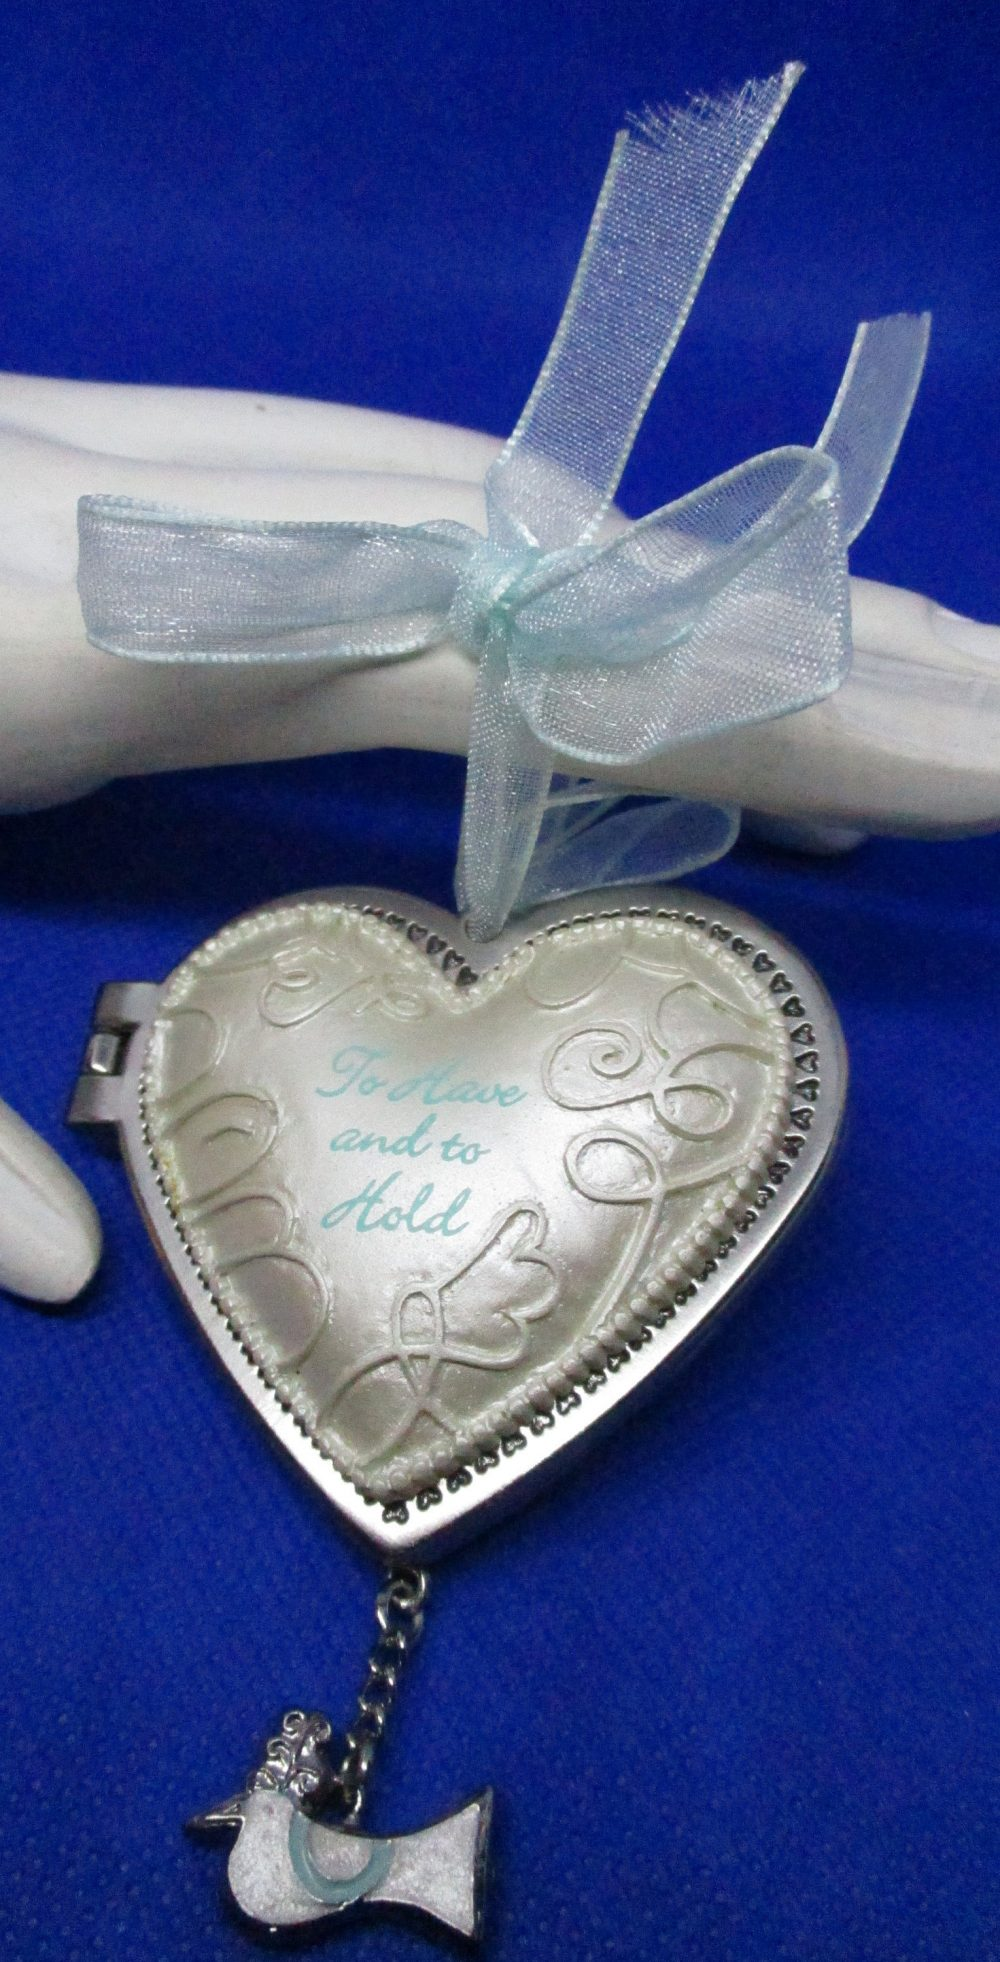 Puffed Double Heart Wedding Keepsake Frame Wedding Ornament Favor Hanging Frame White Silver Swirled